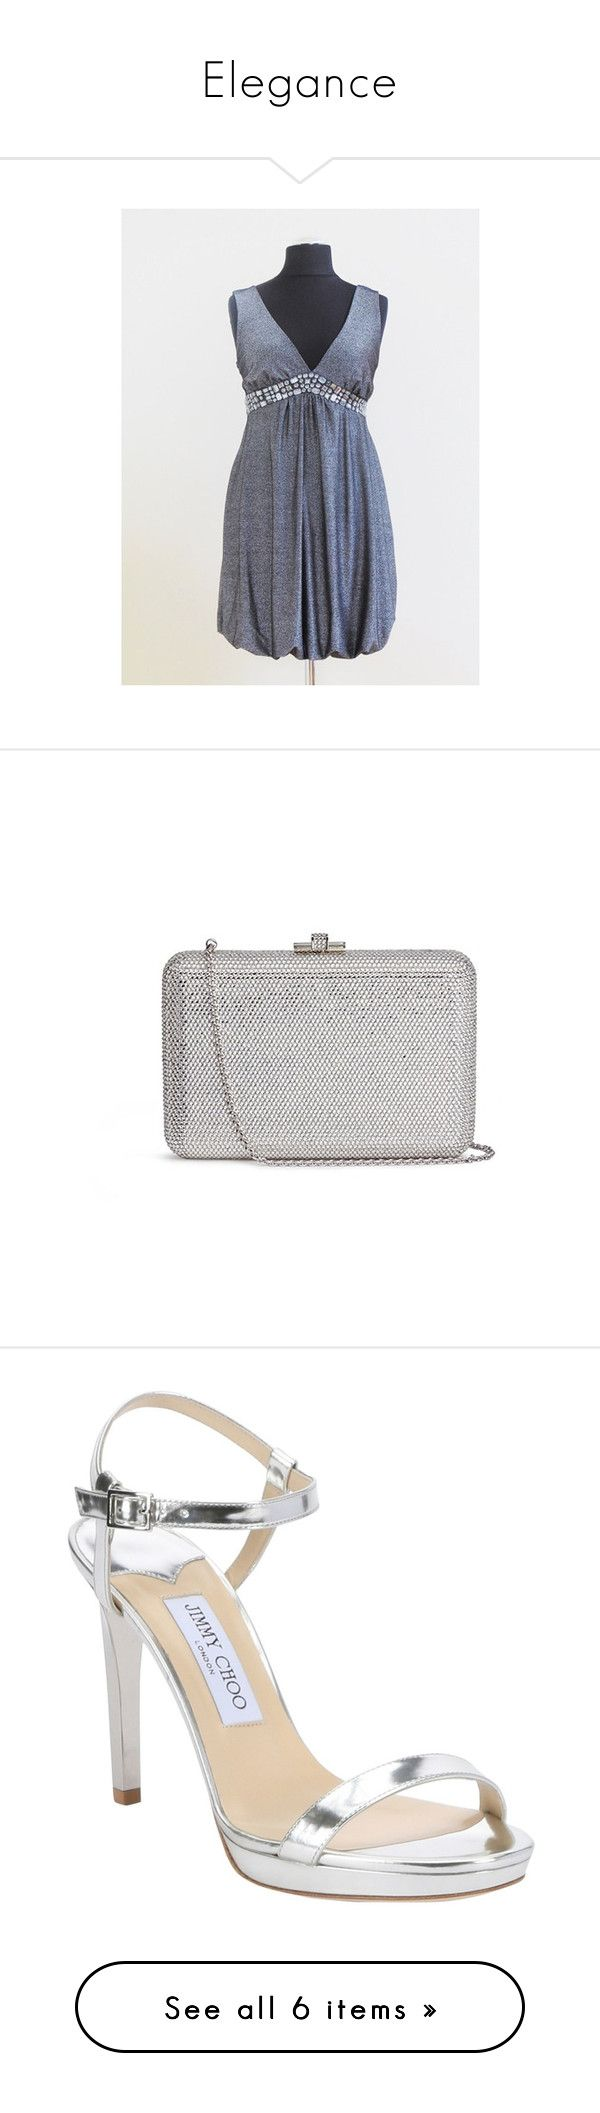 Elegance by styledonna on Polyvore featuring women's fashion, bags, handbags, clutches, metallic, crystal handbag, judith leiber purse, white handbags, evening clutches and crystal purse